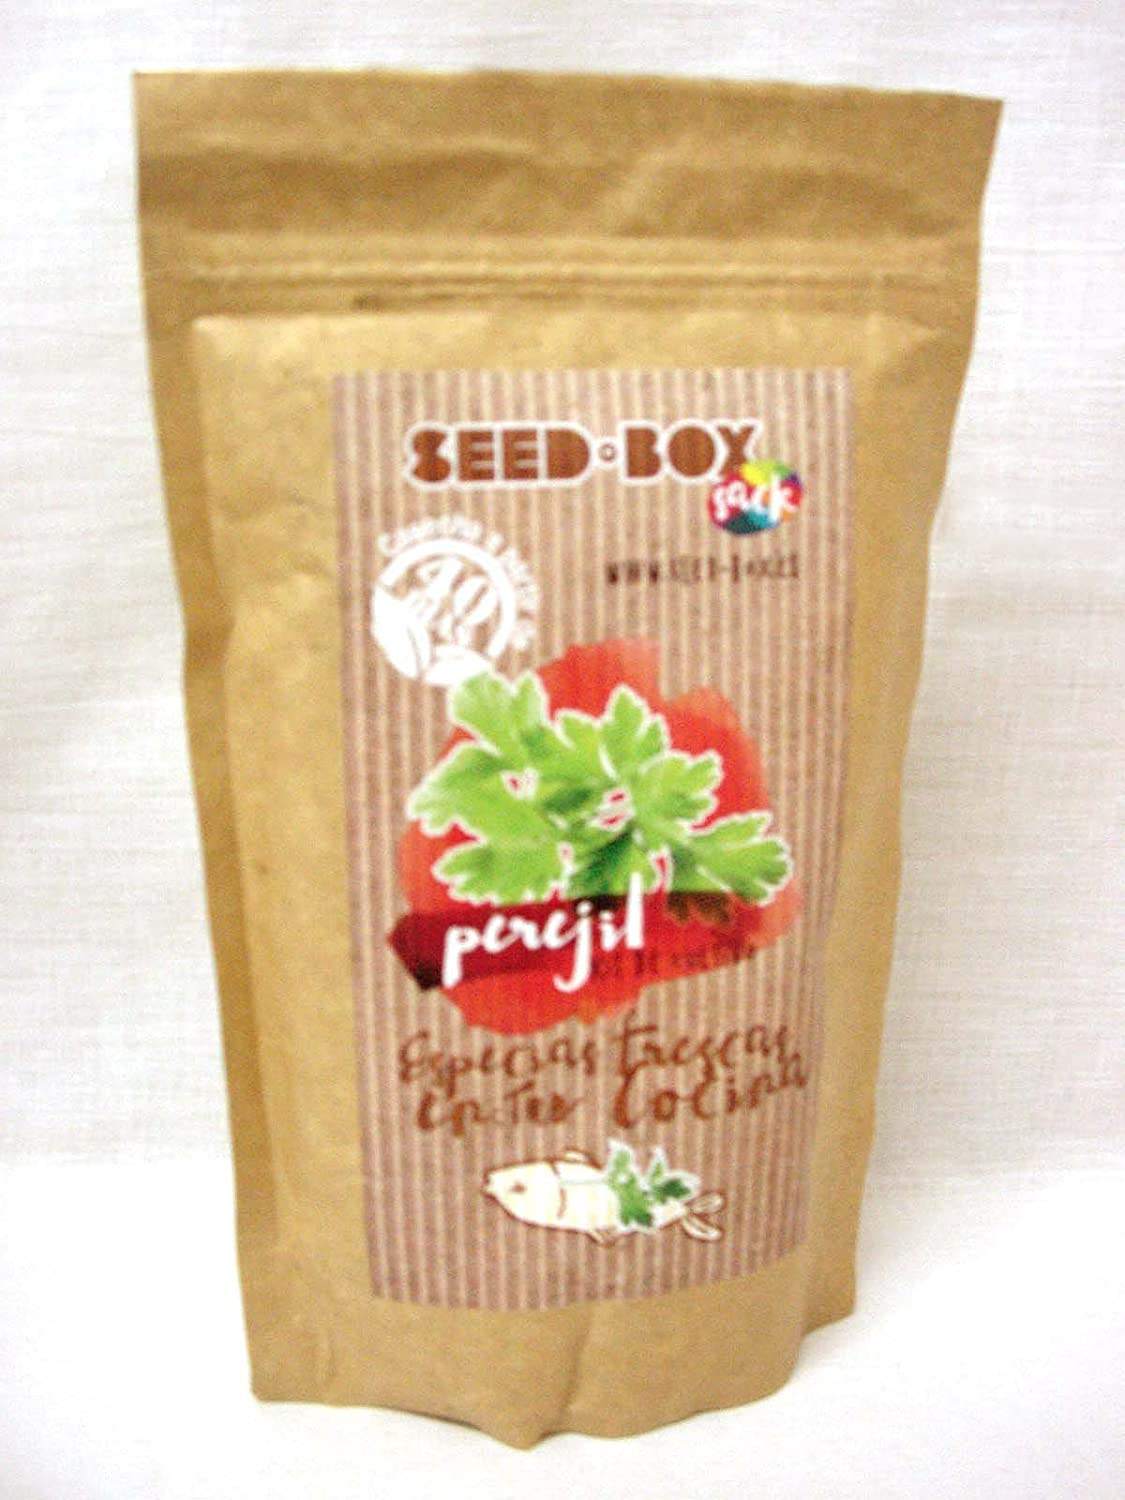 Pocket Garden SeedBox SACK - Perejil: Amazon.es: Hogar